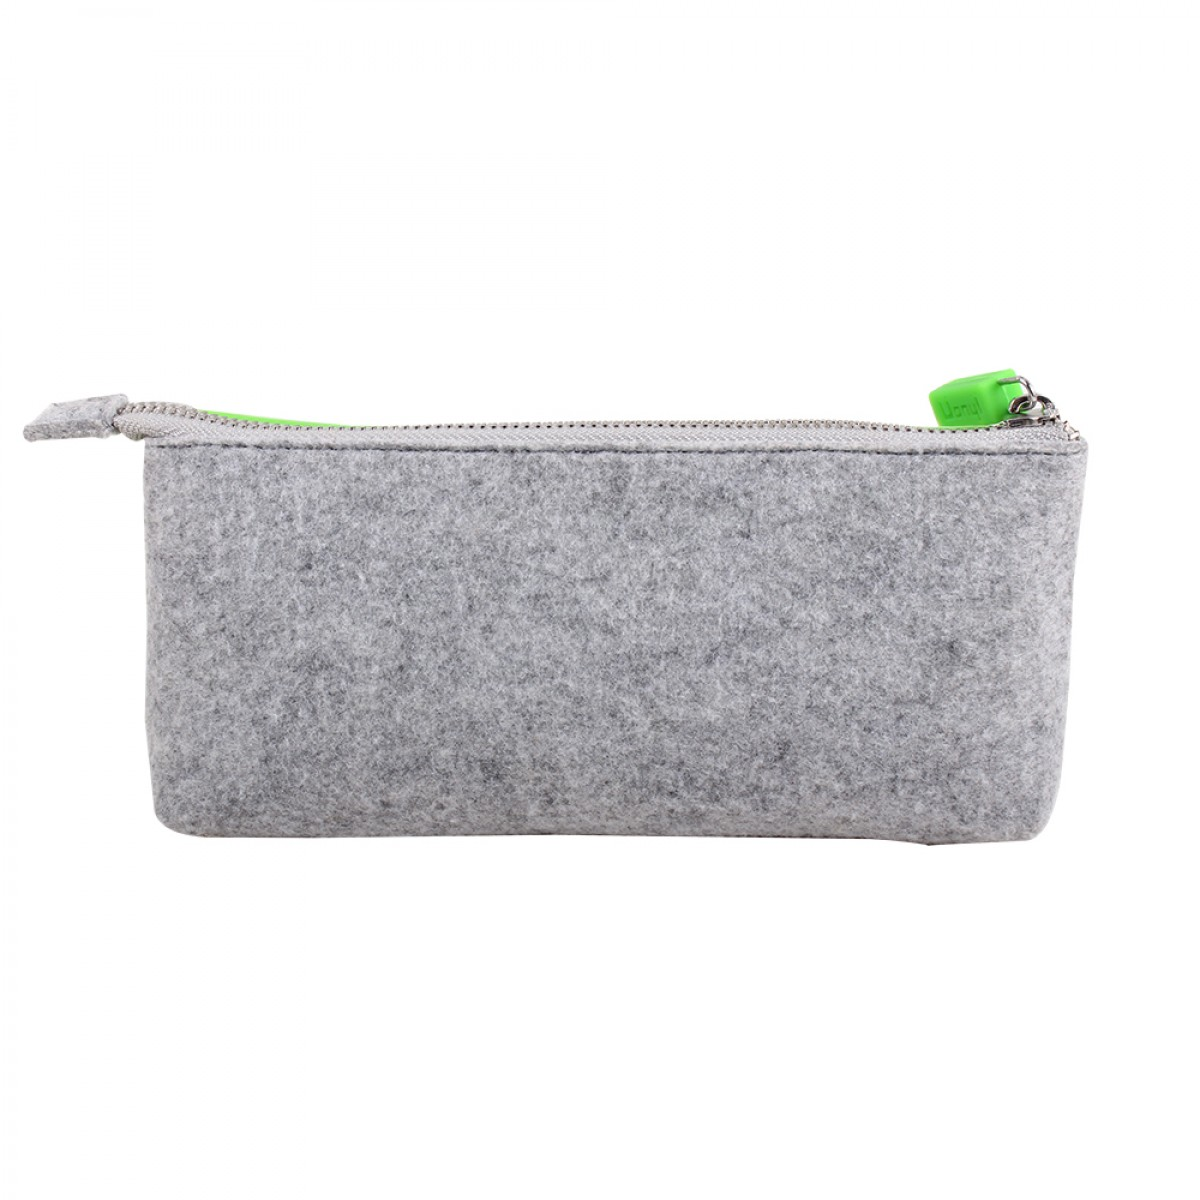 UPixel Pencil Case - Apple Green